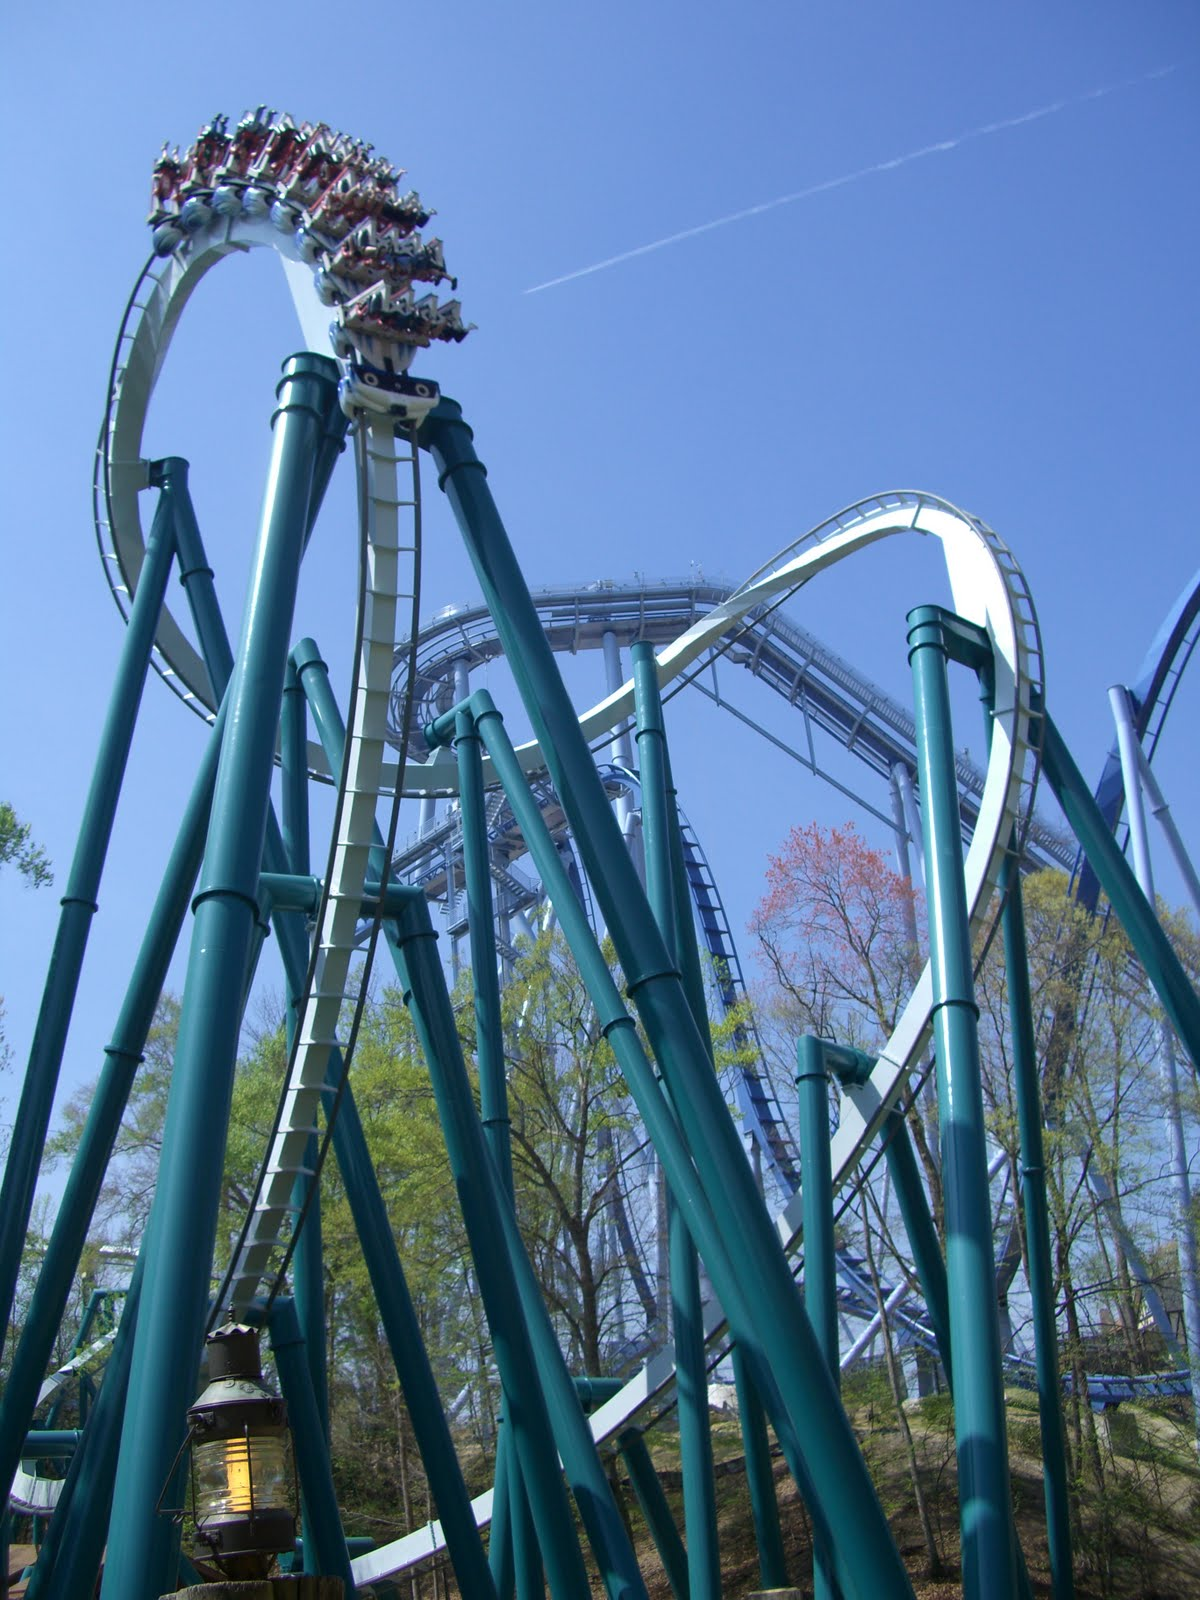 Passion flower life pictures of the roller coasters at - Roller coasters at busch gardens ...